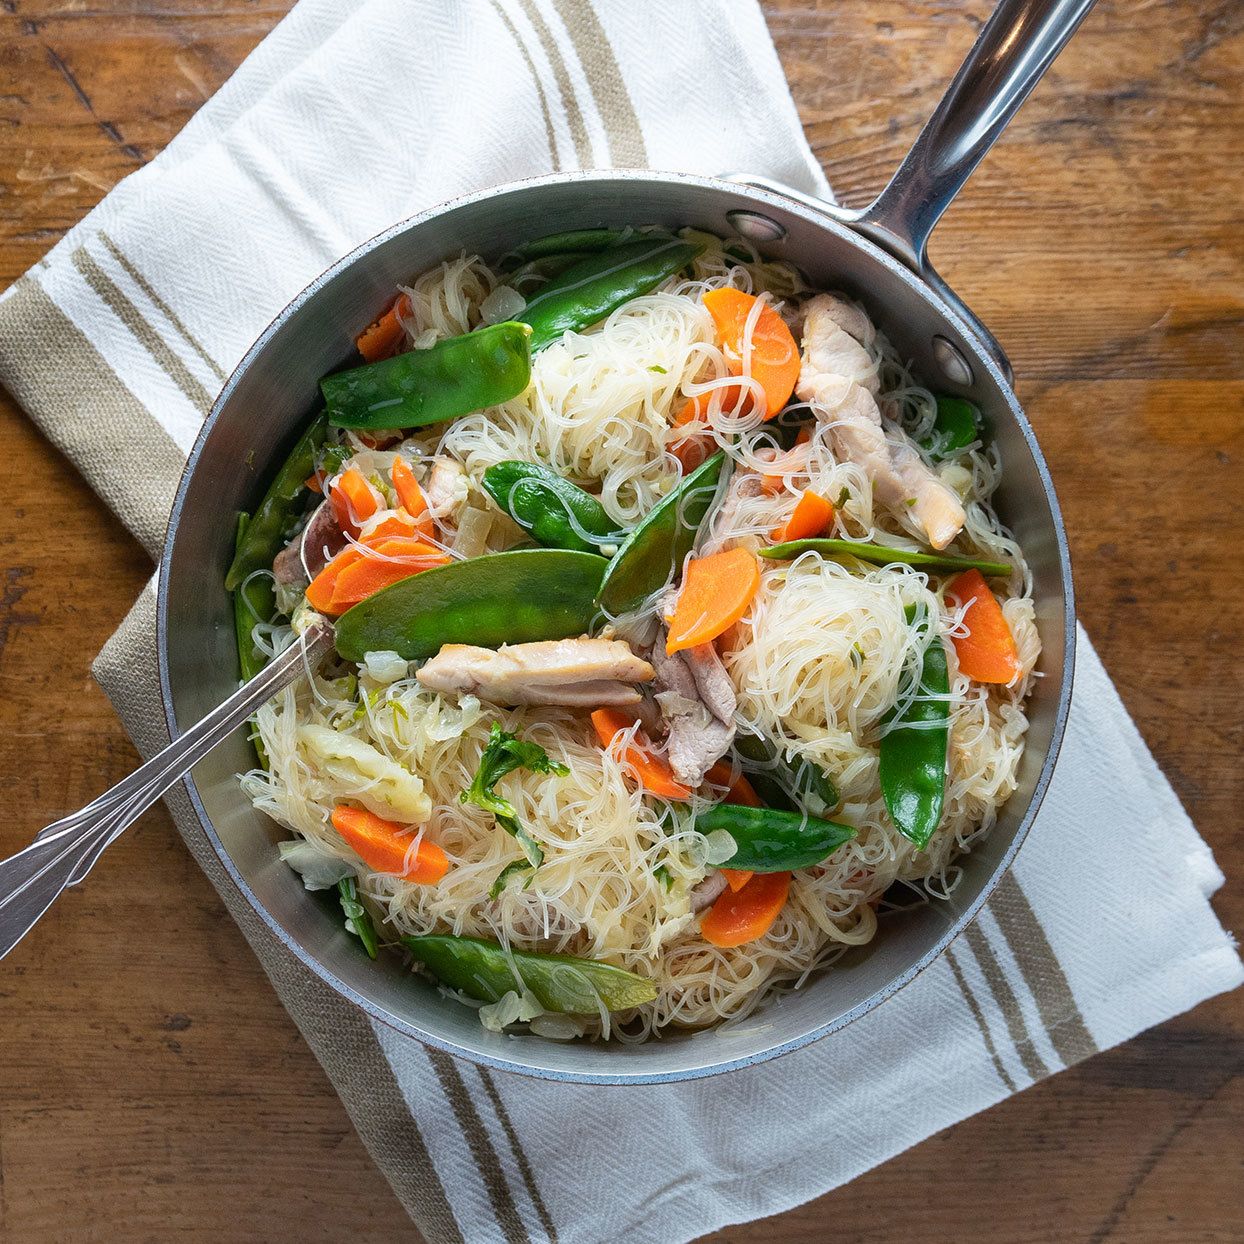 This healthy version of the classic Filipino noodle dish pancit bihon has plenty of vegetables, along with chicken and pork. And since it comes together in about a half-hour, this traditional party food can do double duty as an easy weeknight dinner. Source: EatingWell.com, January 2020